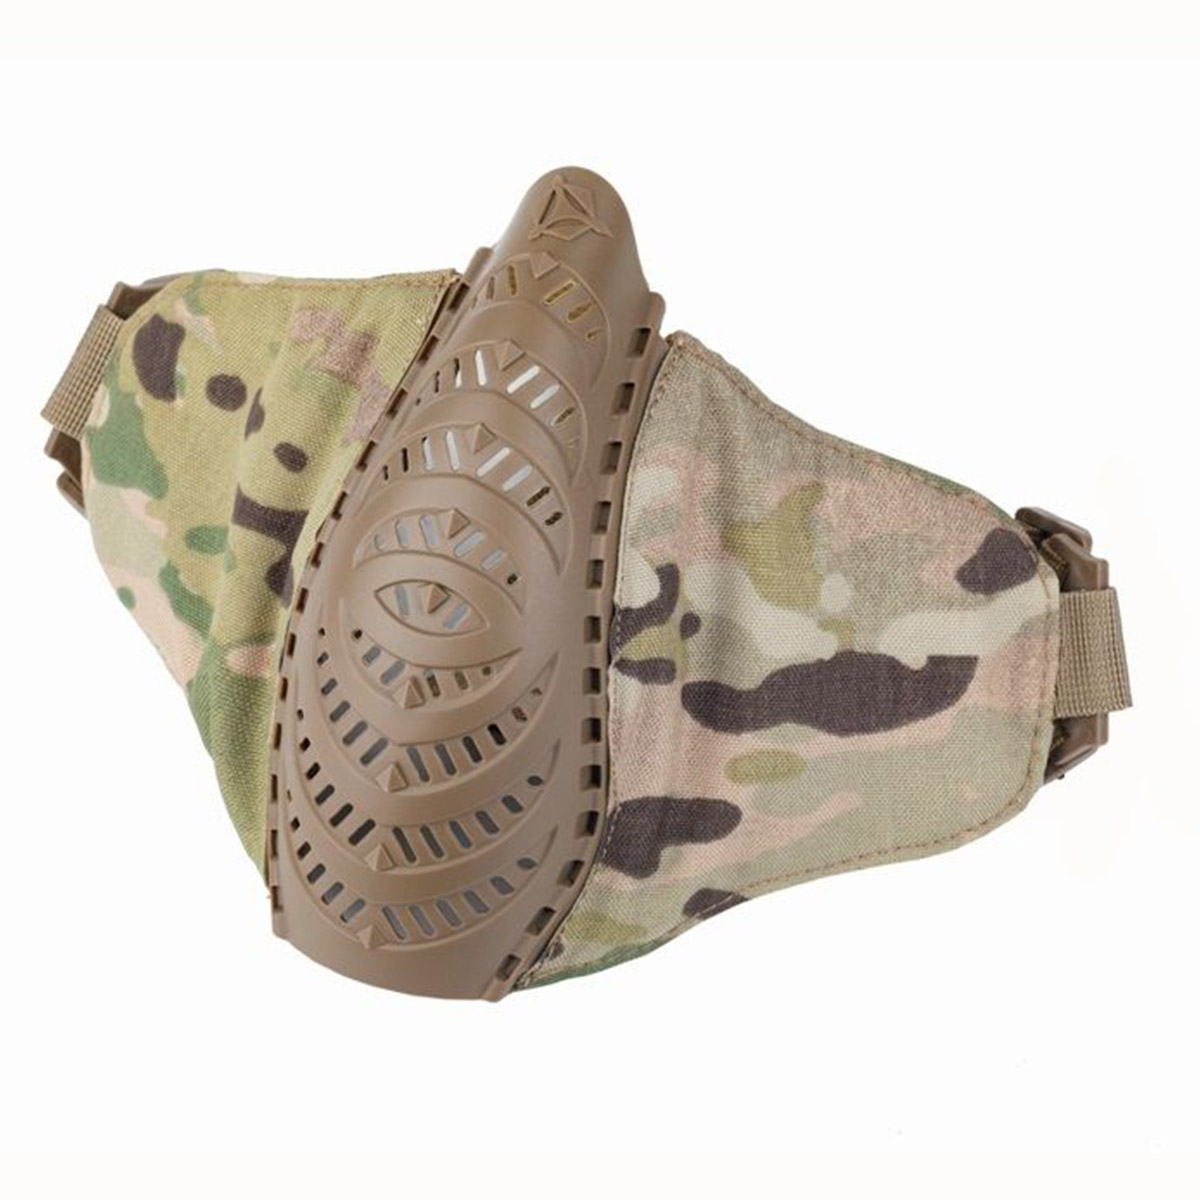 This is a photo of a multicam mask, spread out like a bird